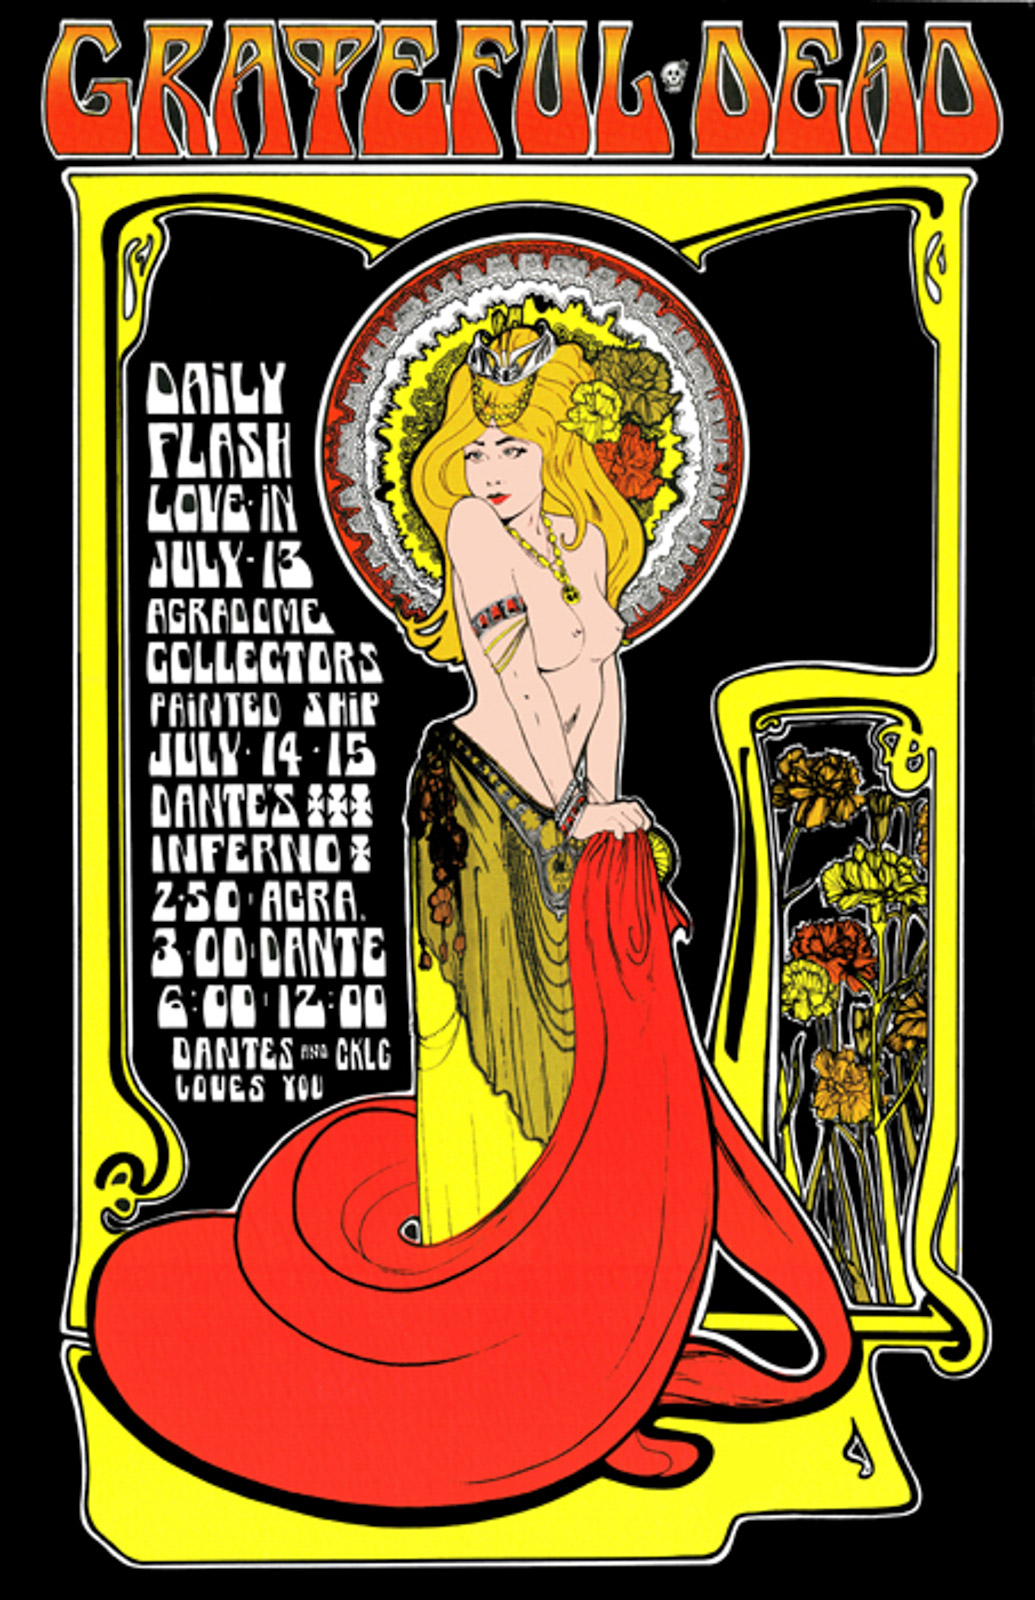 The Canadian Artist Behind the Grooviest Psychedelic Concert Posters